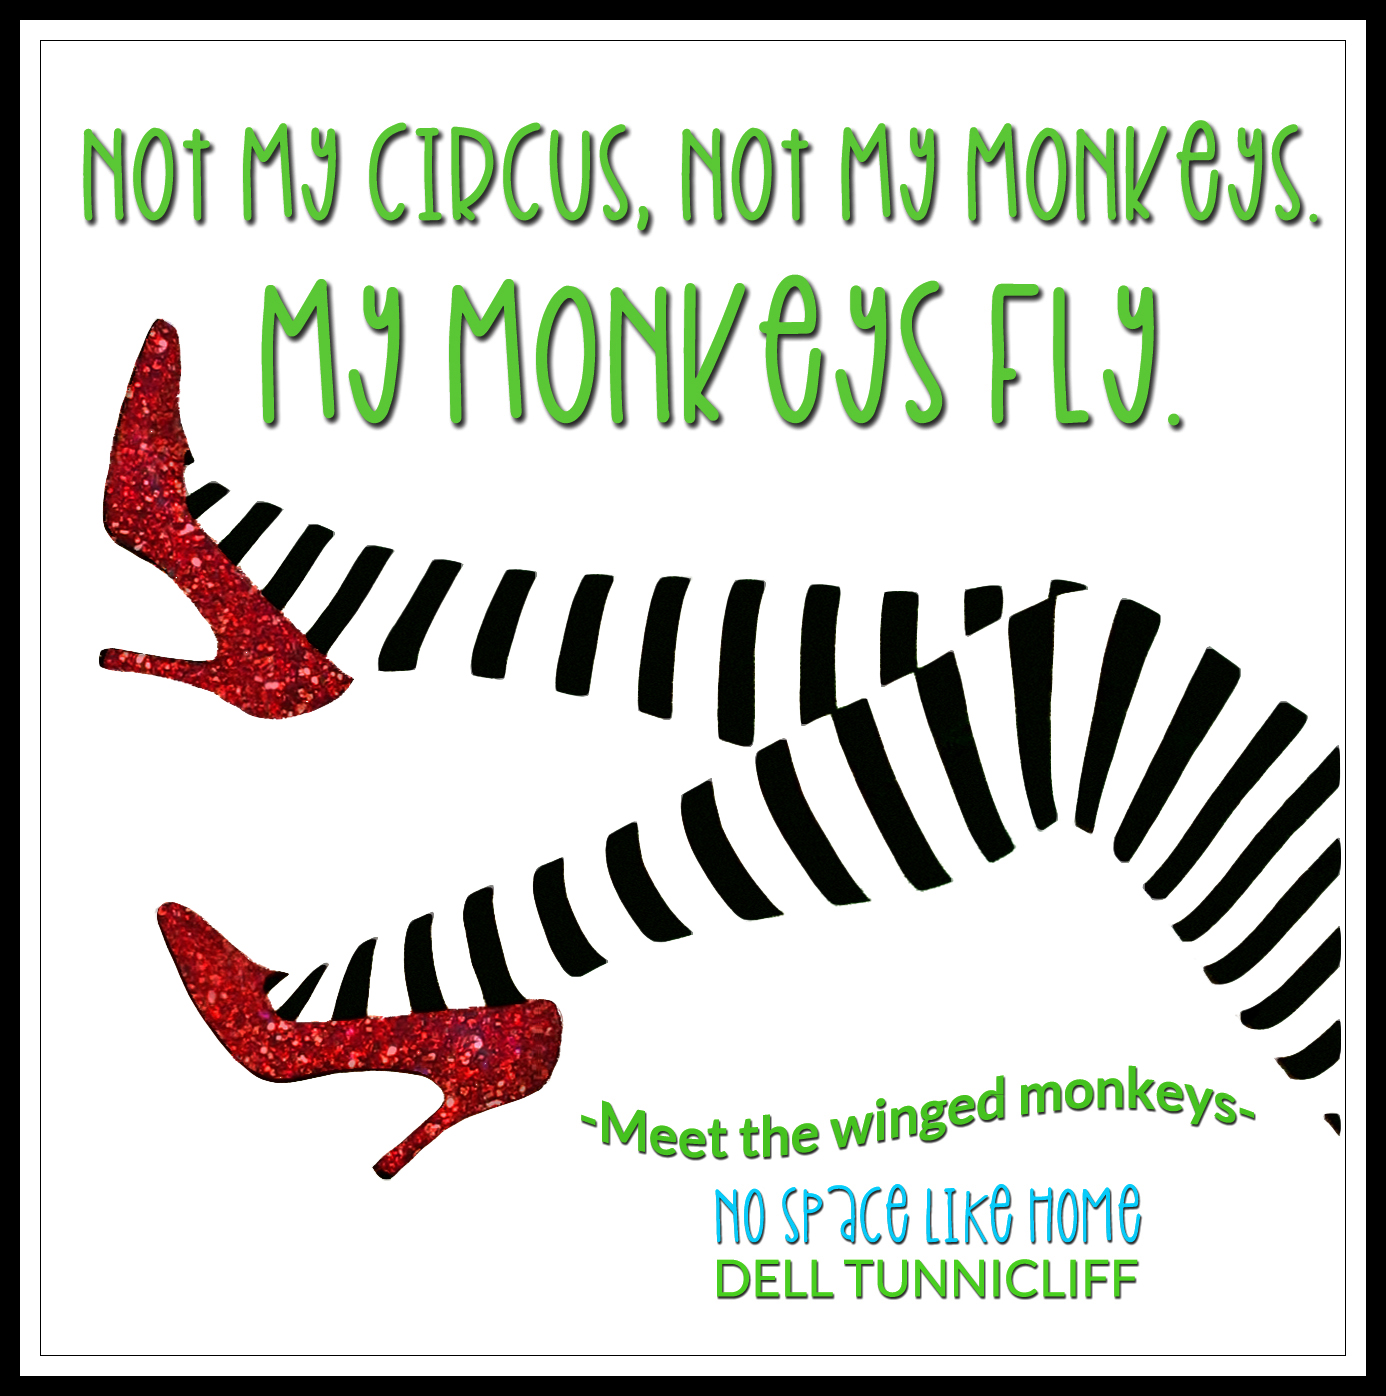 My Monkeys Fly!